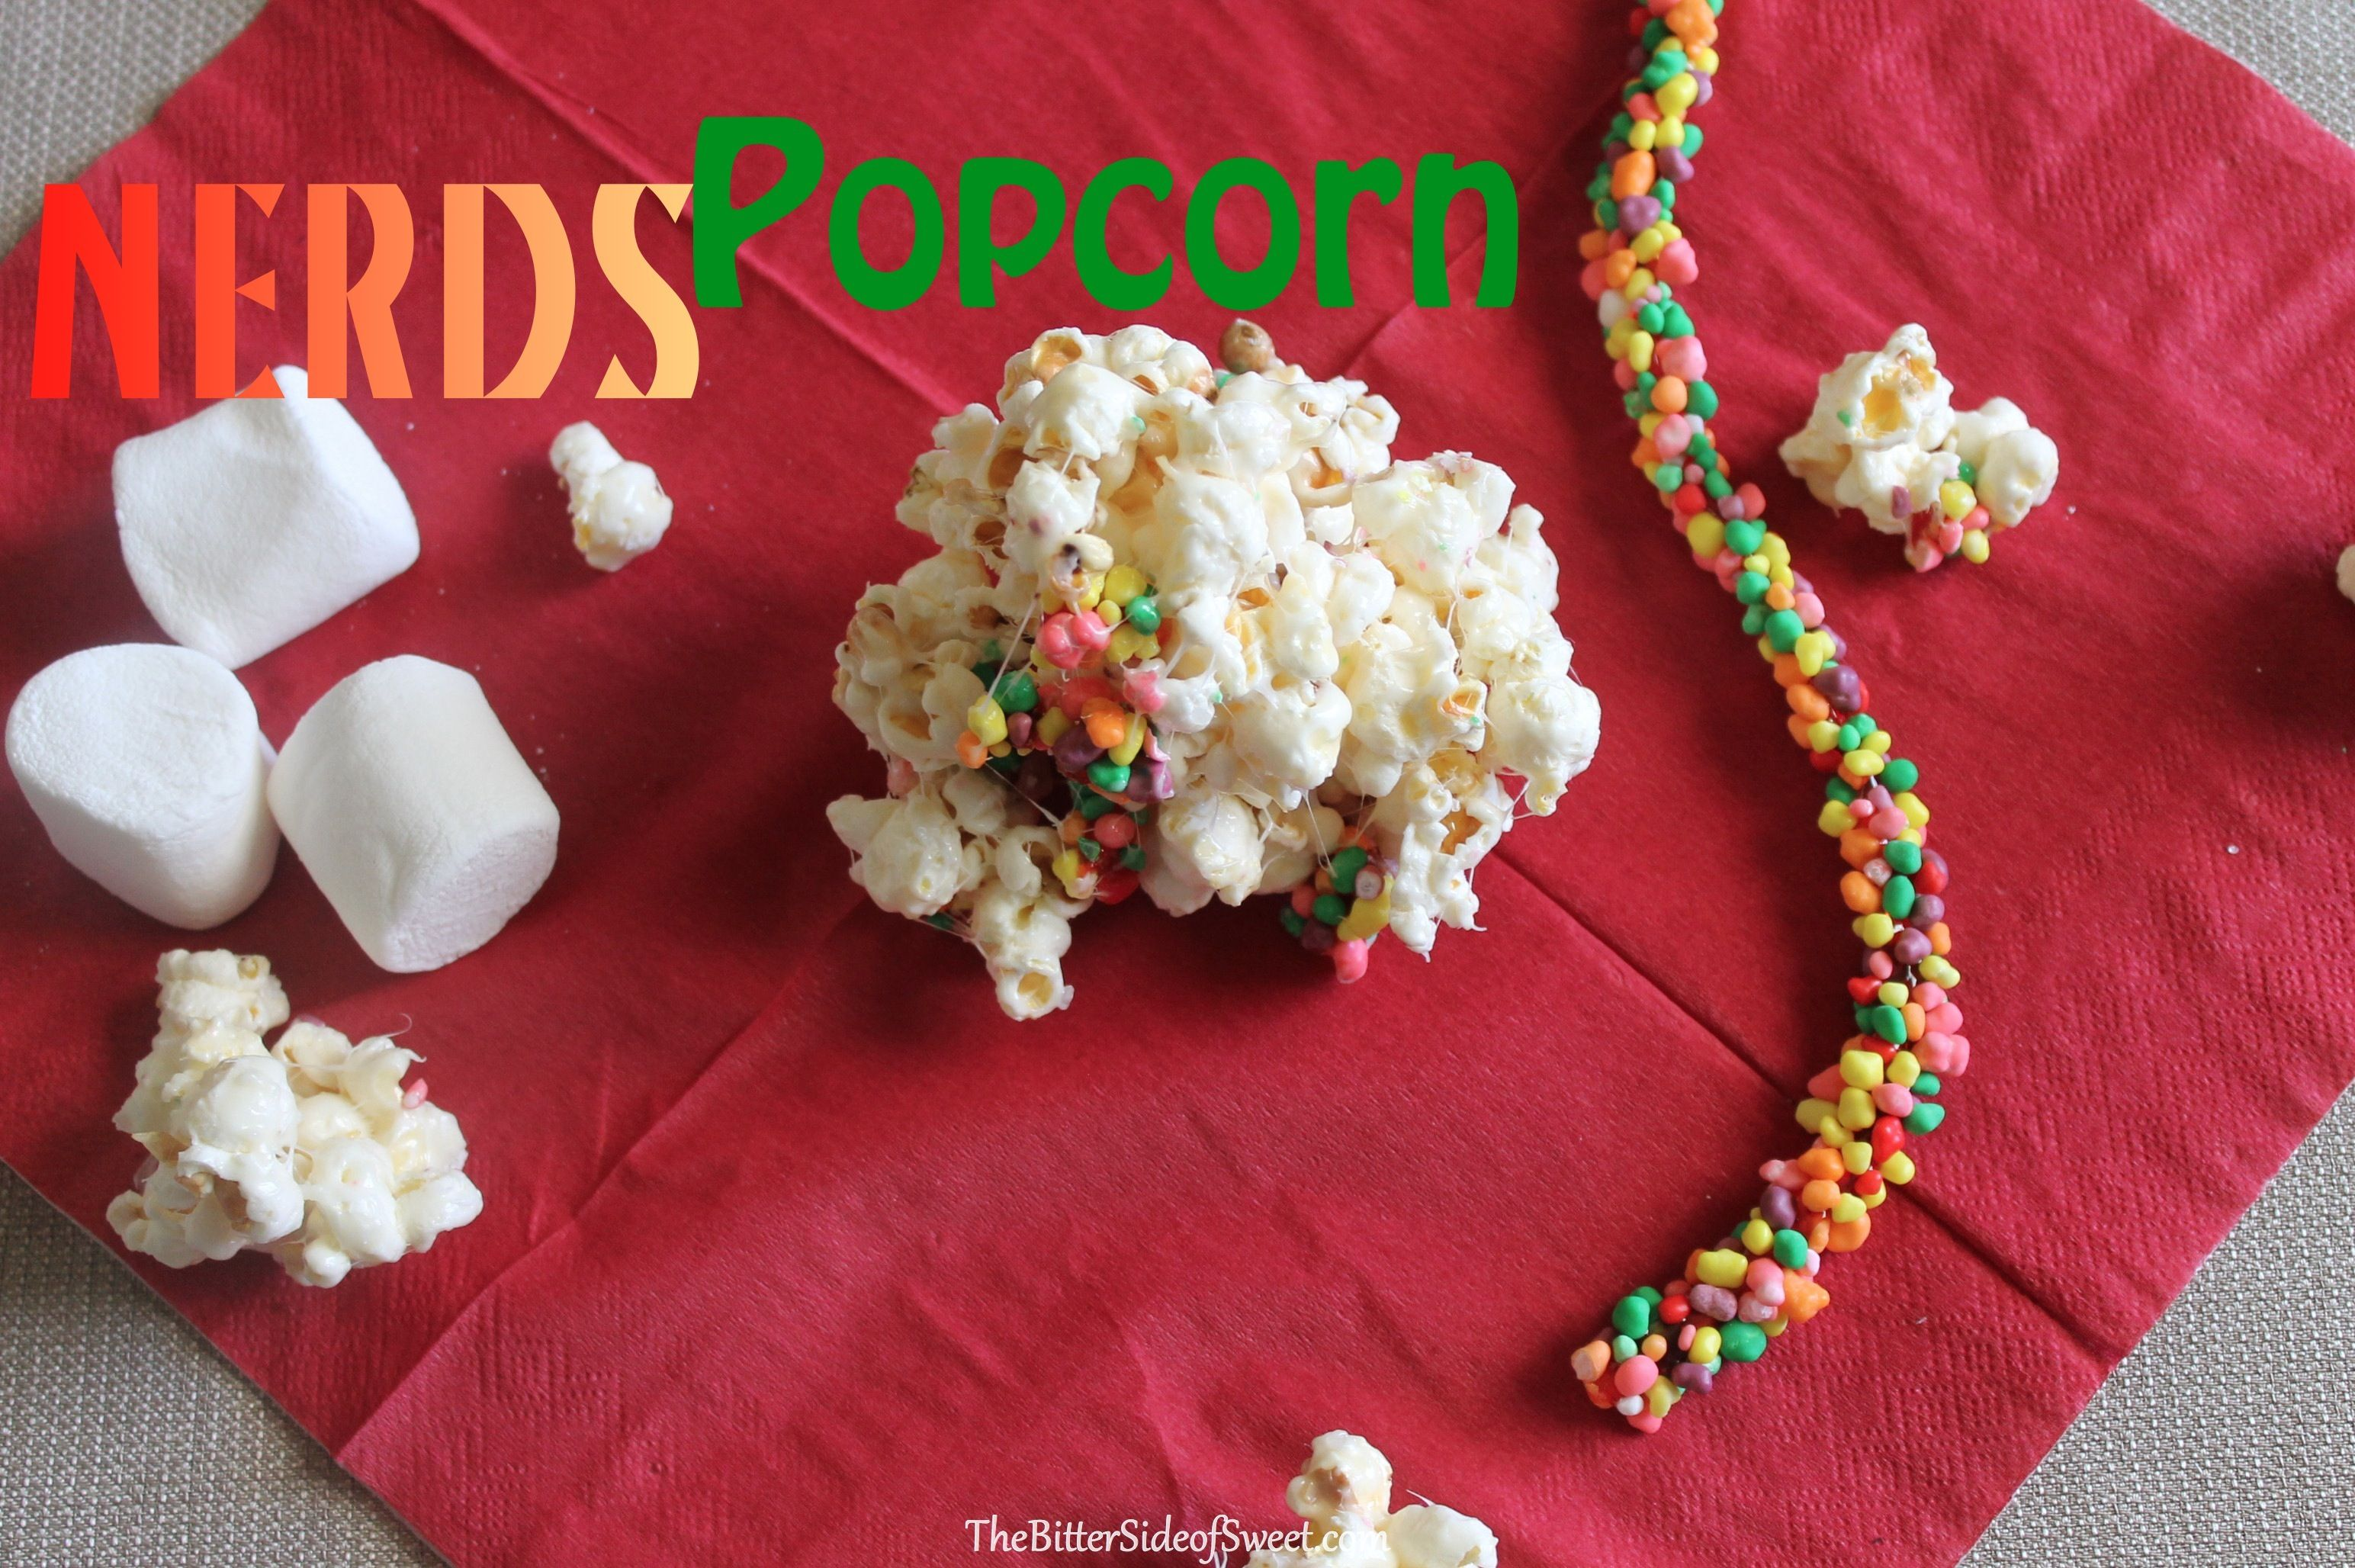 Rainbow Nerds Rope Candy Popcorn Via